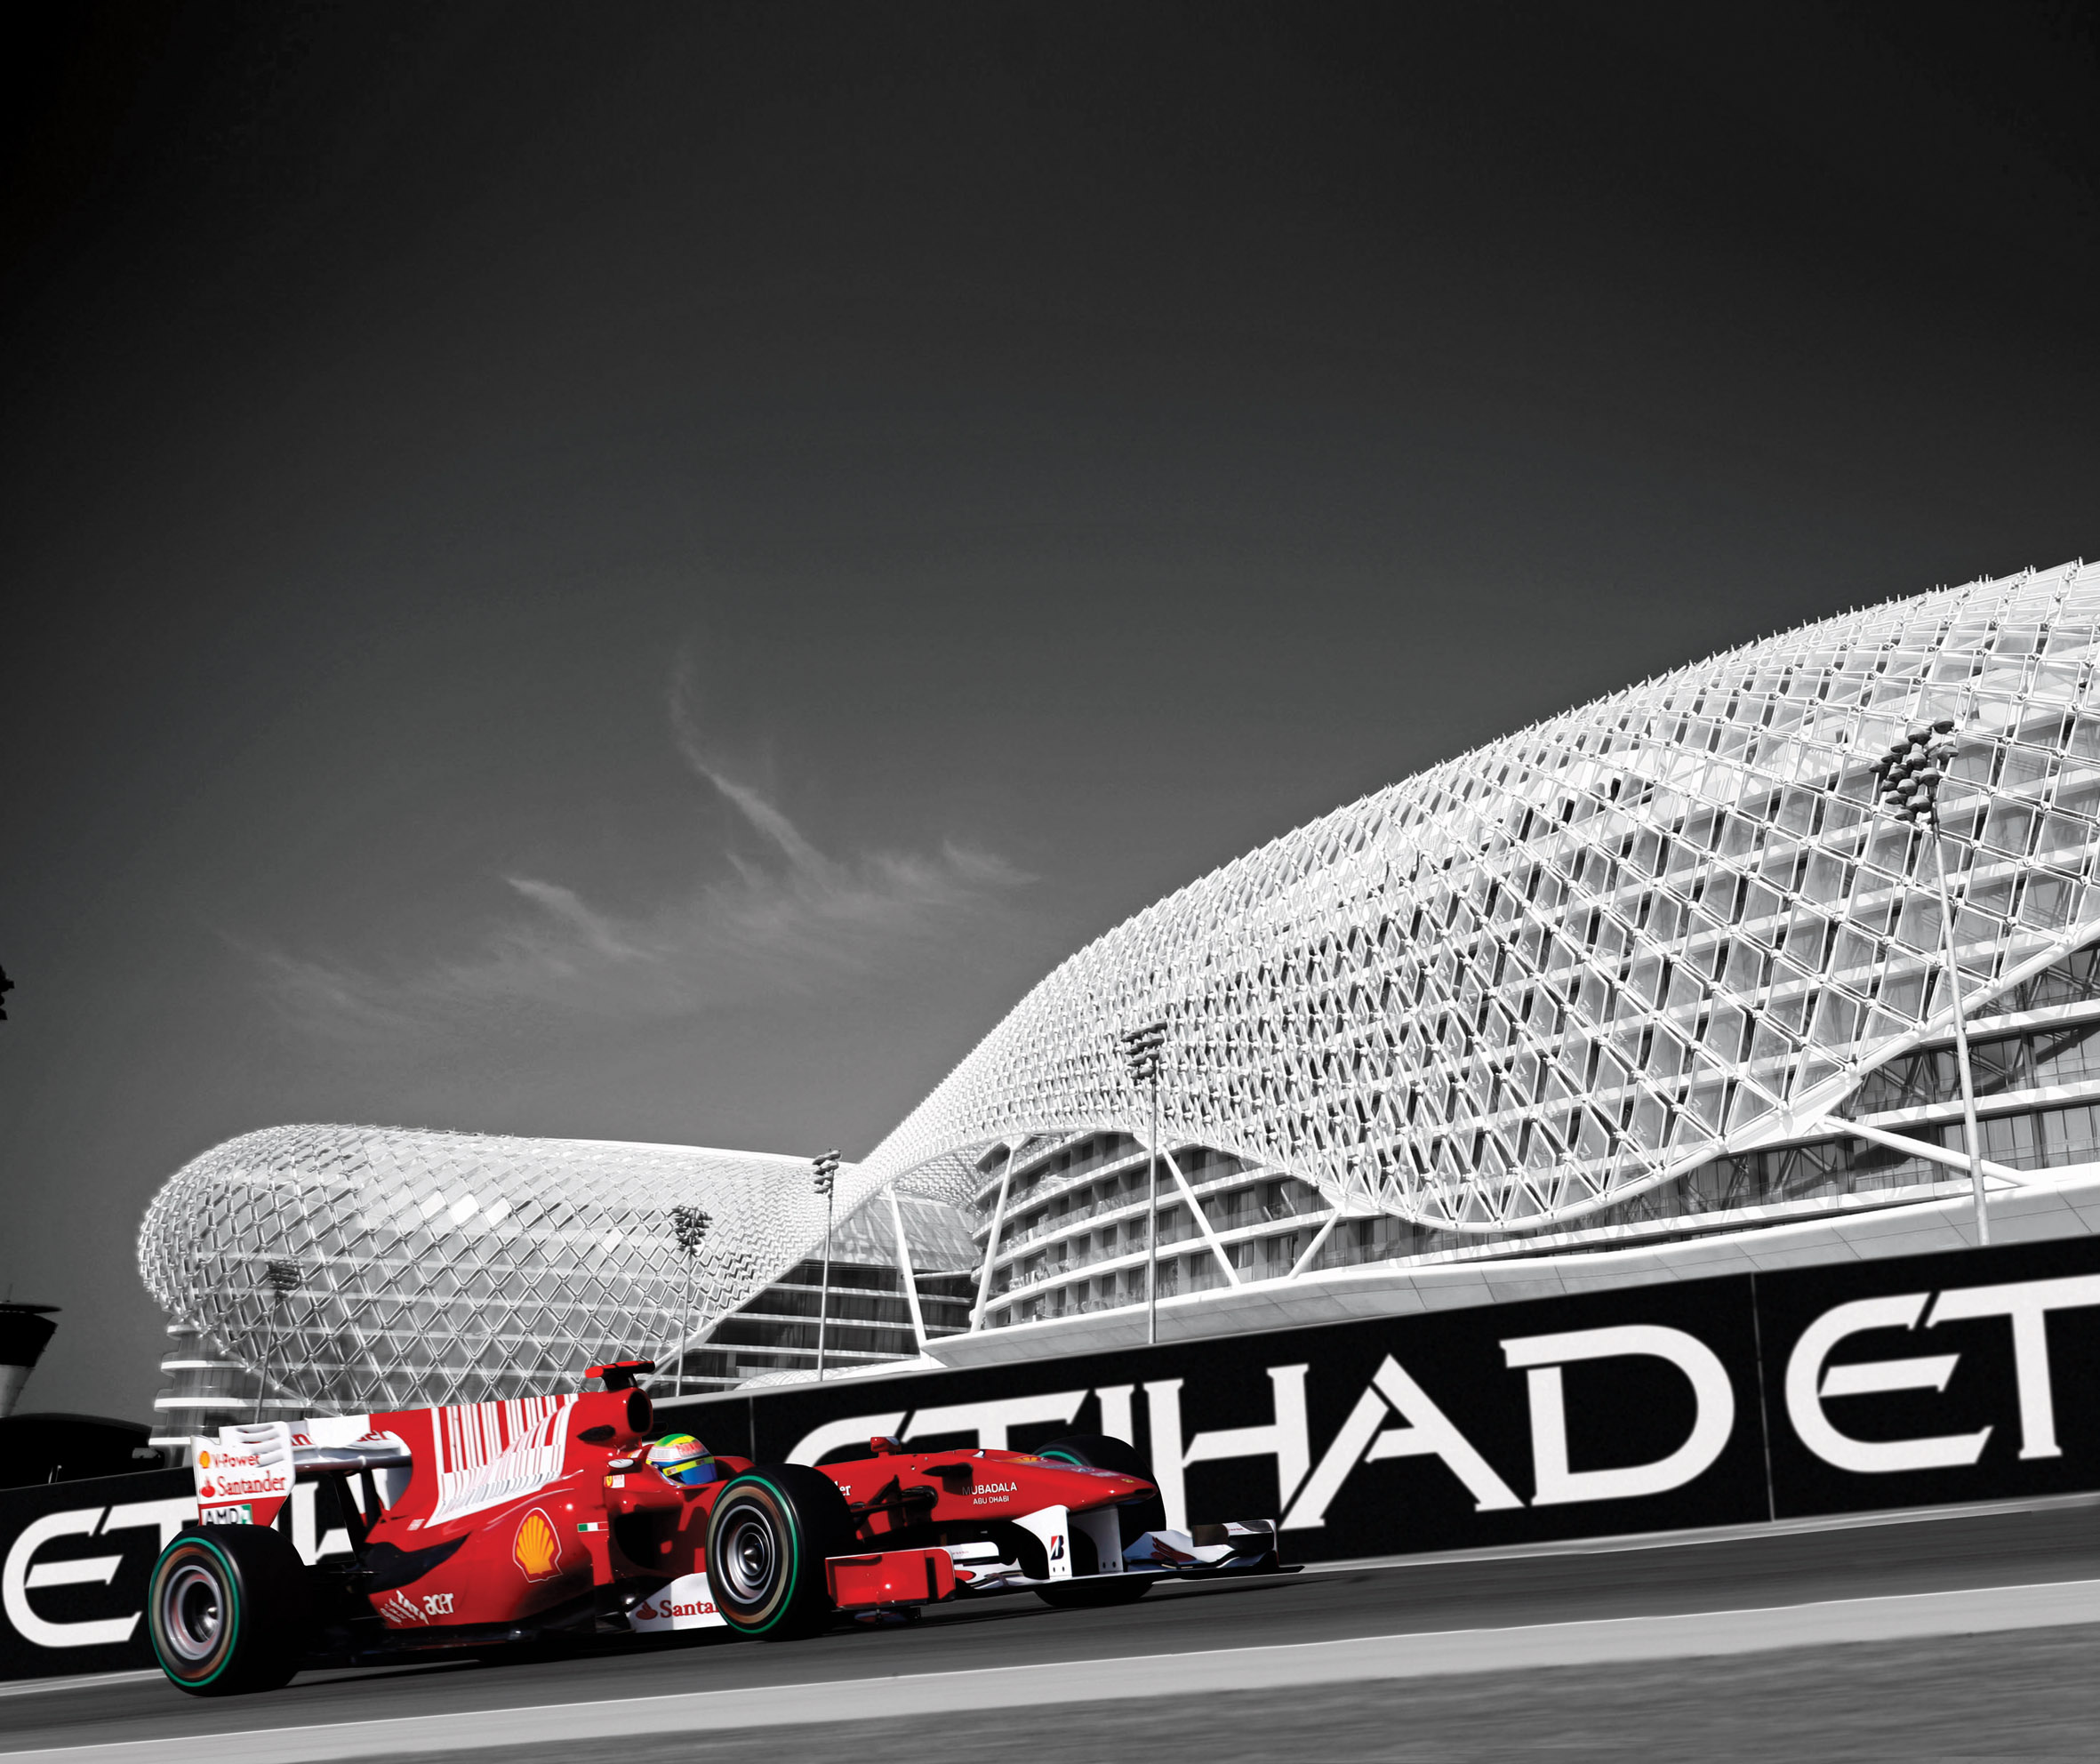 Formula 1 fans in the Arab world are passionately awaiting the Grand Prix of Abu Dhabi's 2014 race which will be held on 23 November. (Photo Public Domain)